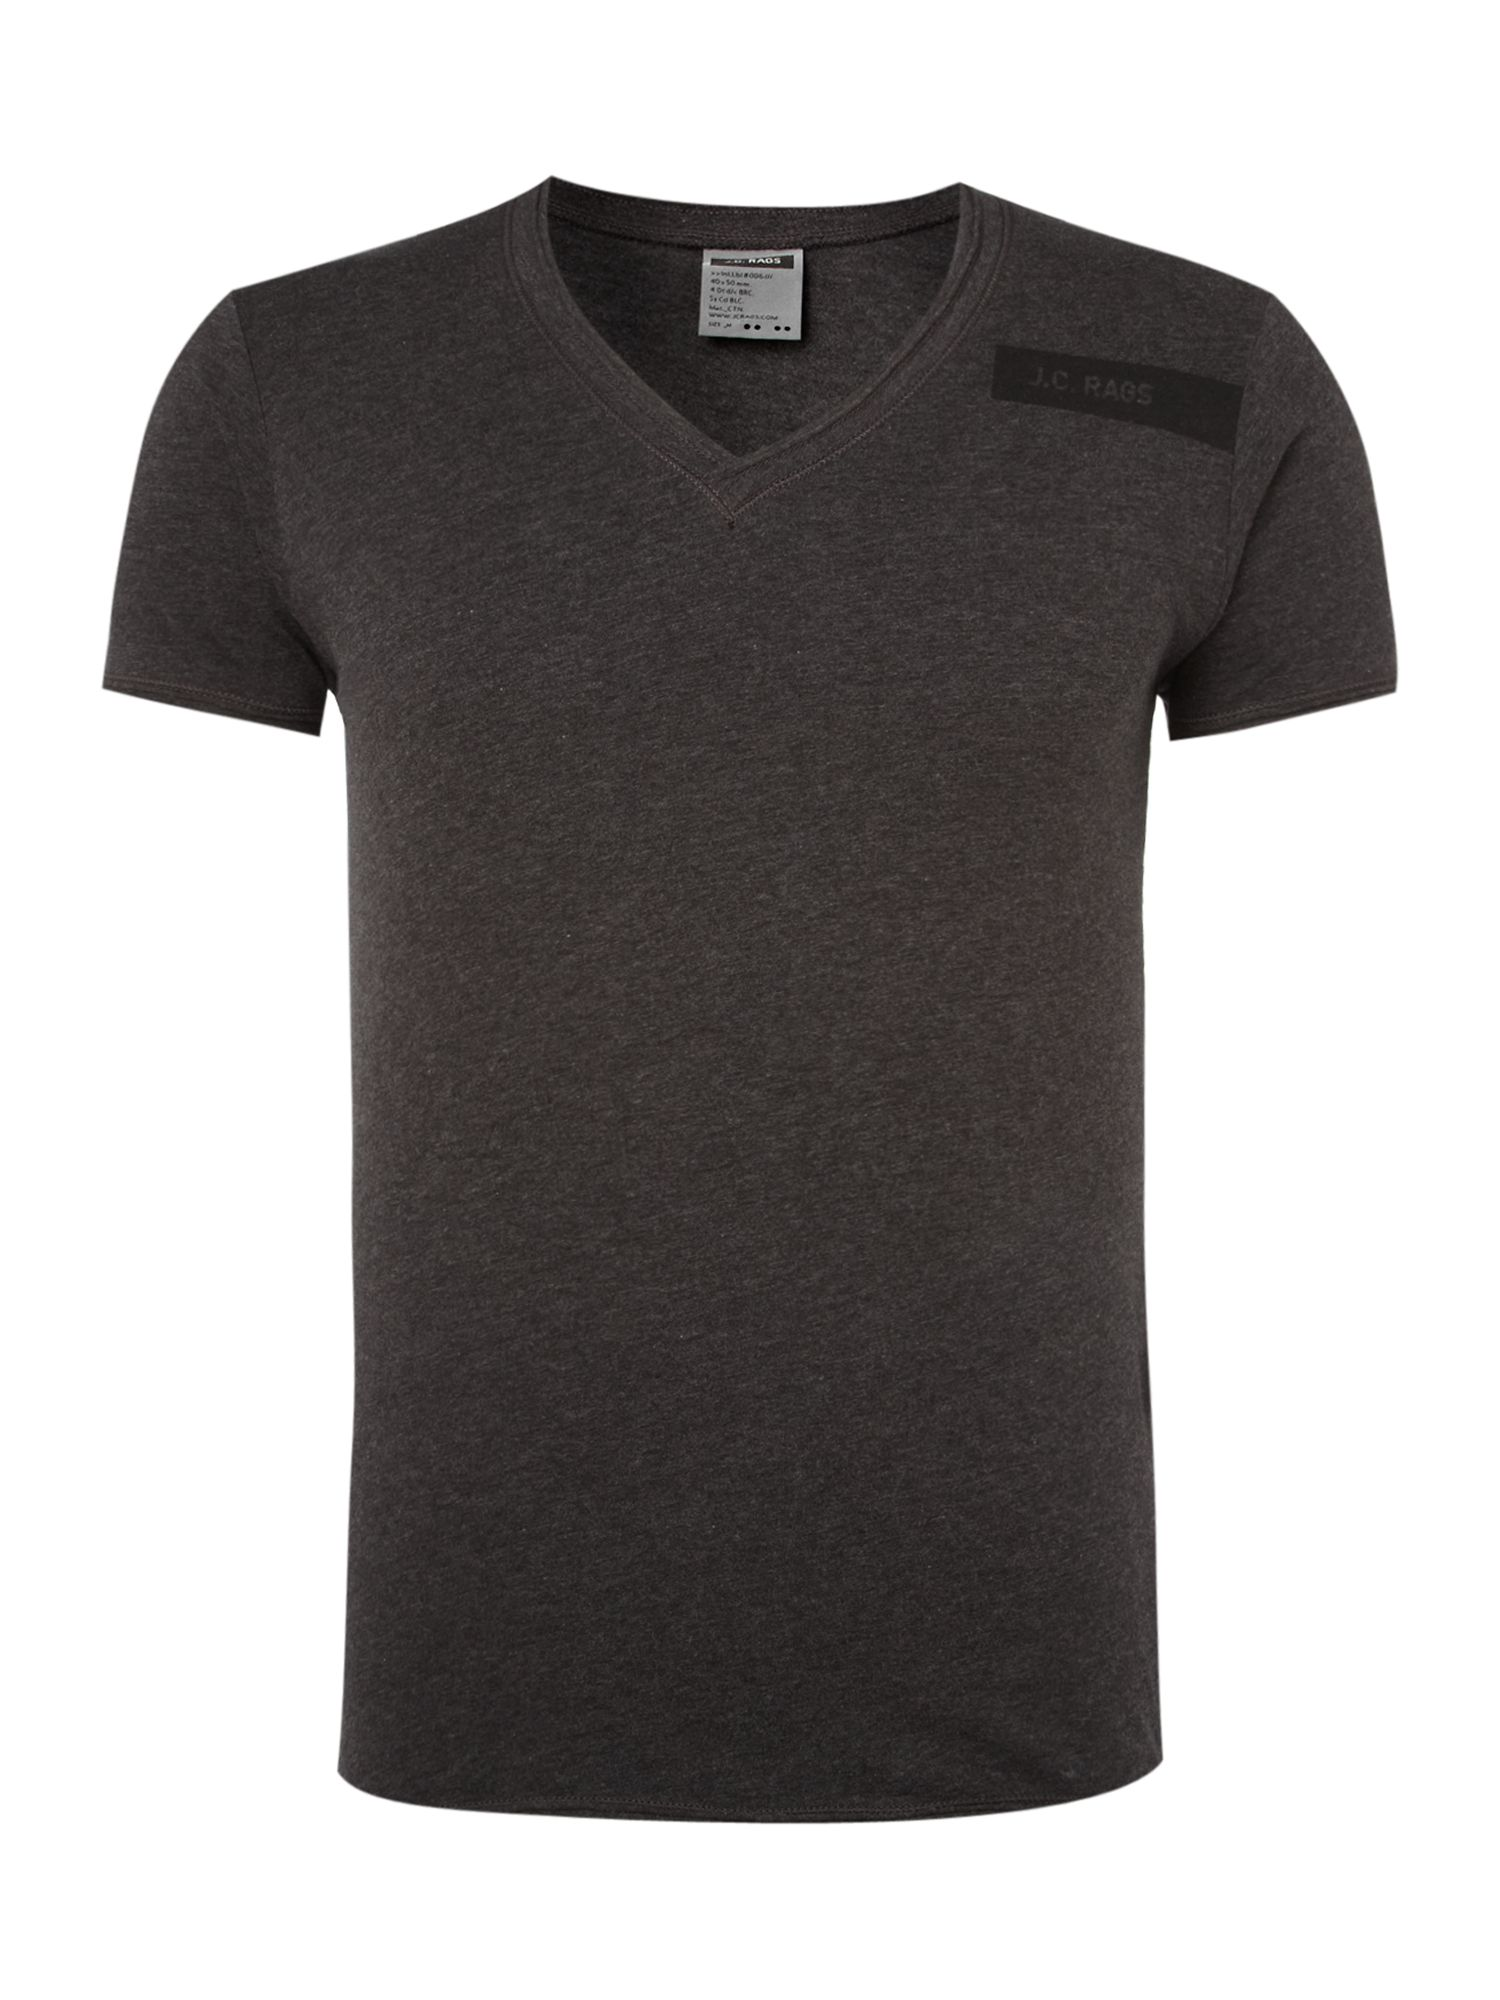 JC Rags Washed V-neck T-shirt - Grey product image